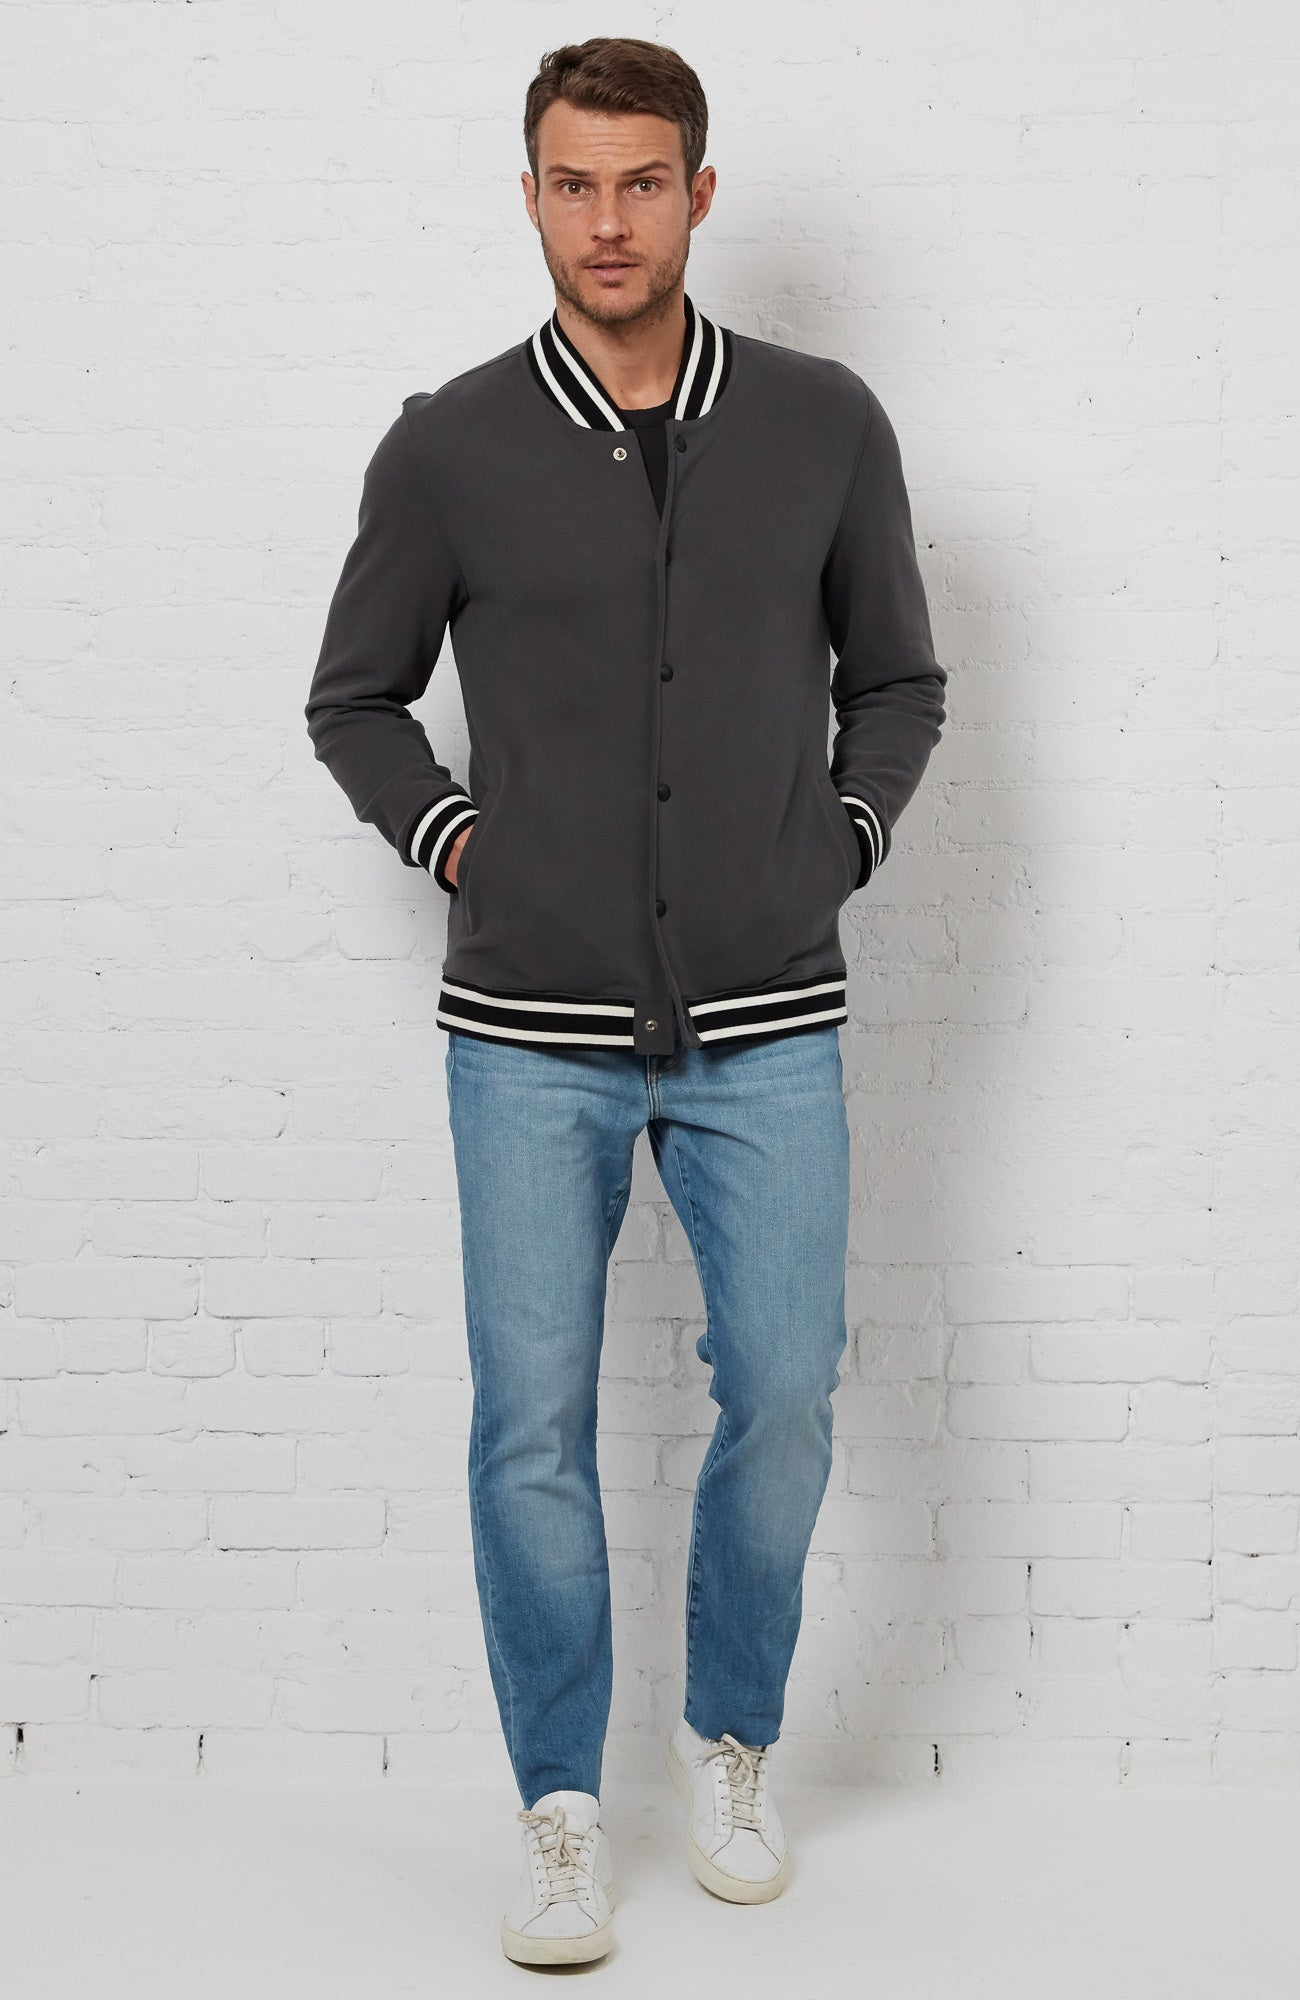 Heyward Jacket - Charcoal